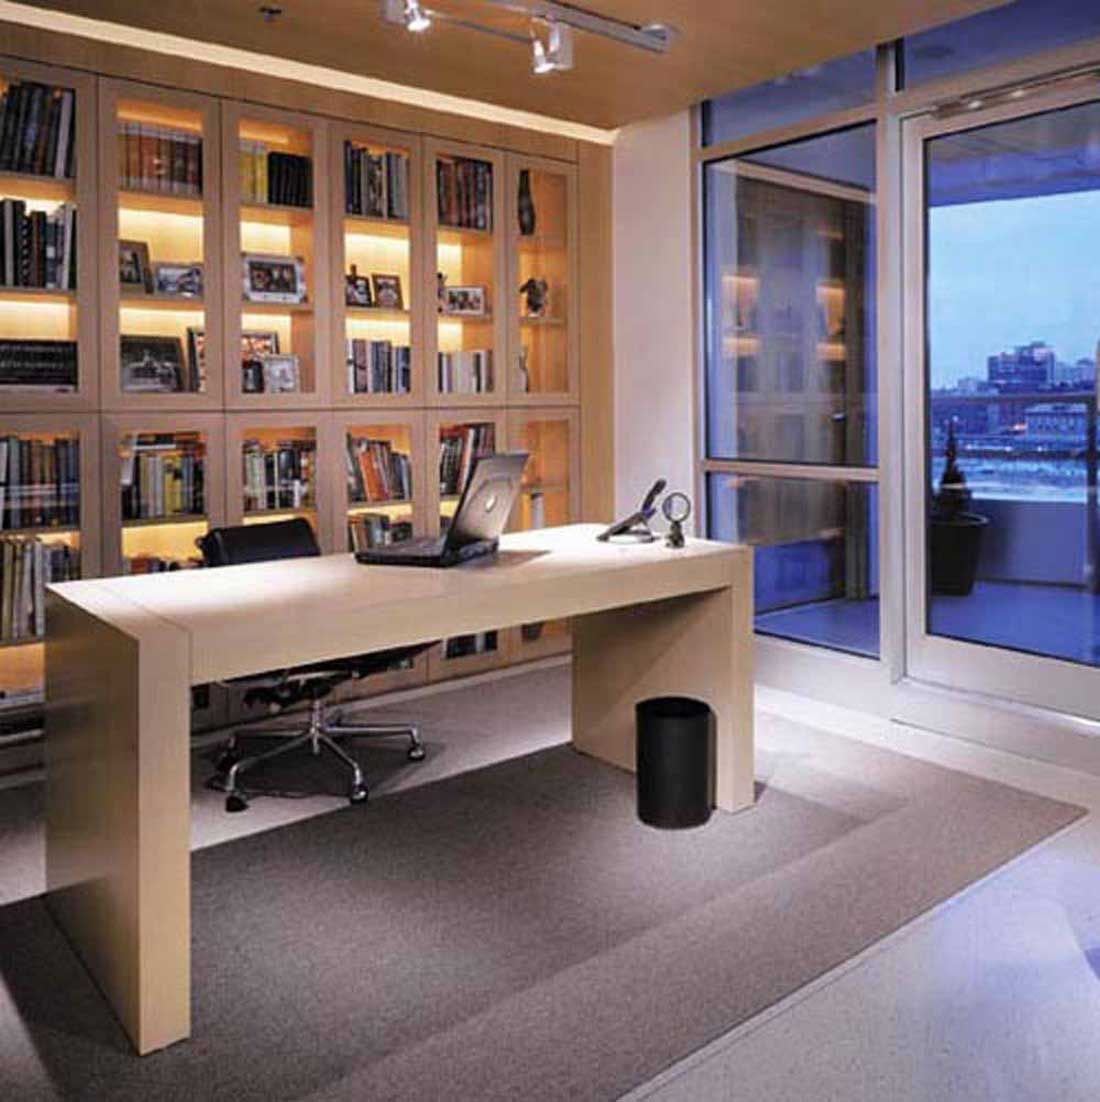 Home Office designs | Home Office Design Ideas for Big or Small ...